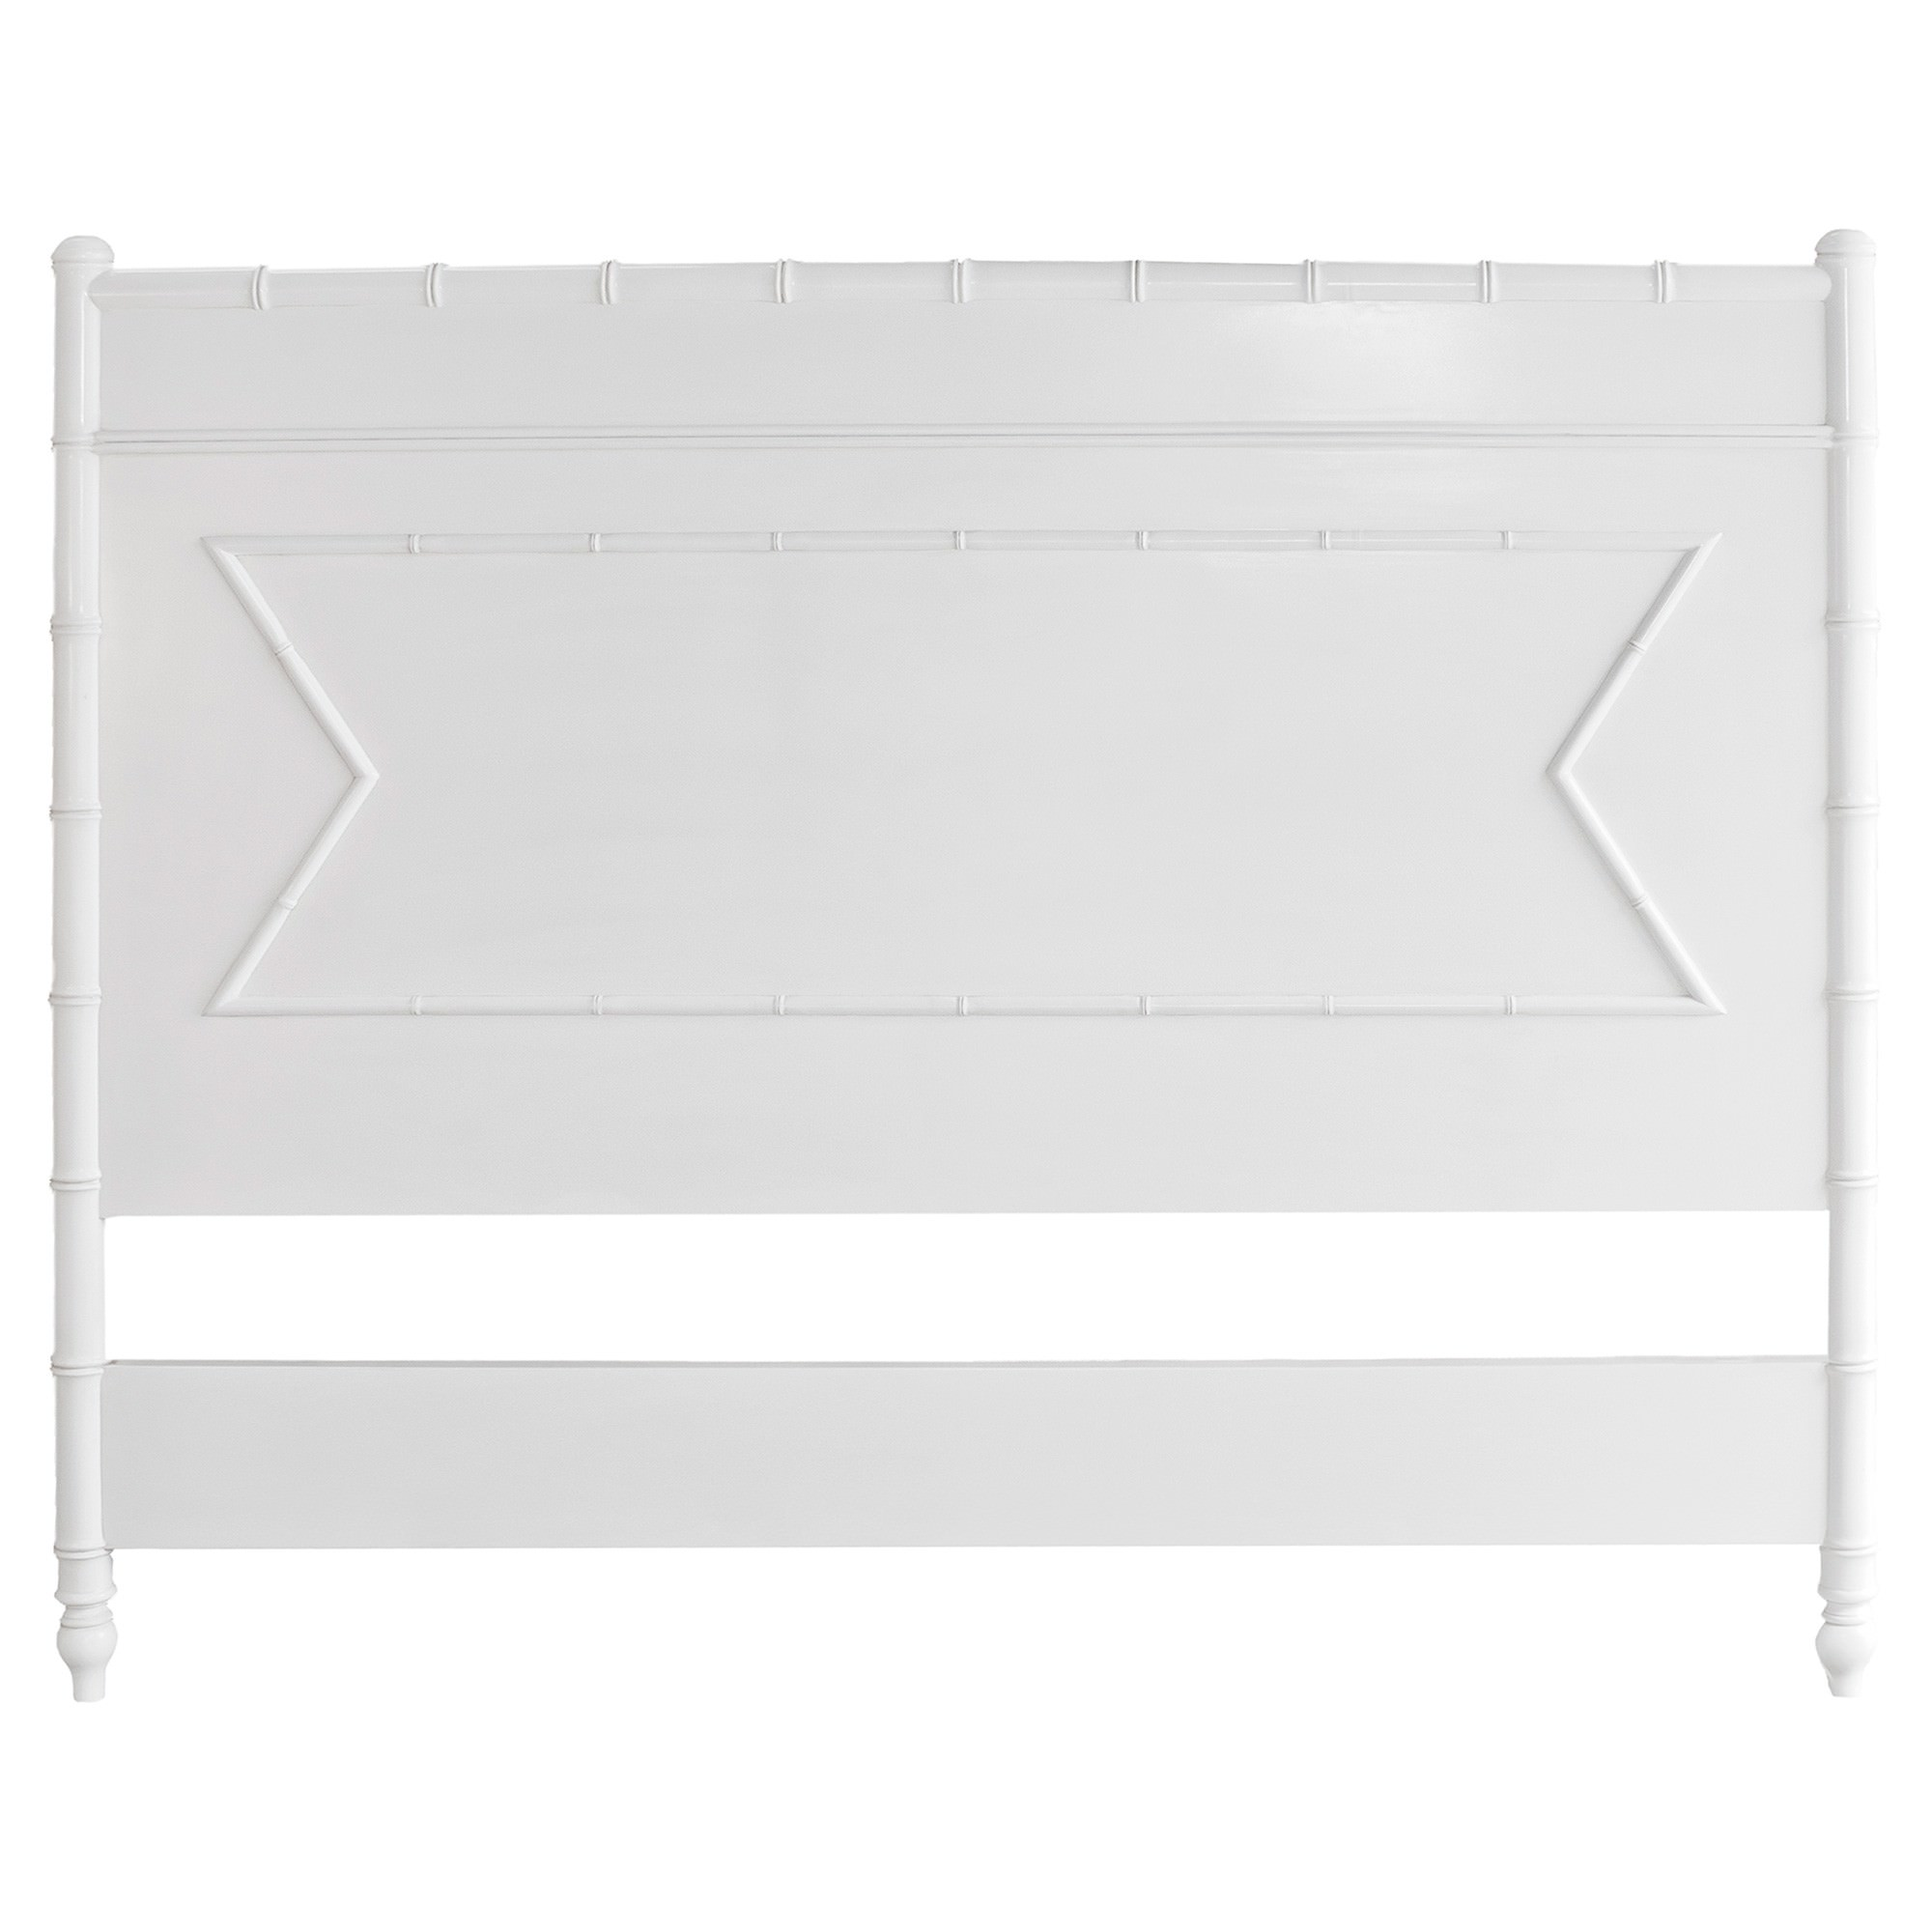 Cayman Mahogany Timber Bed Headboard, Queen, White